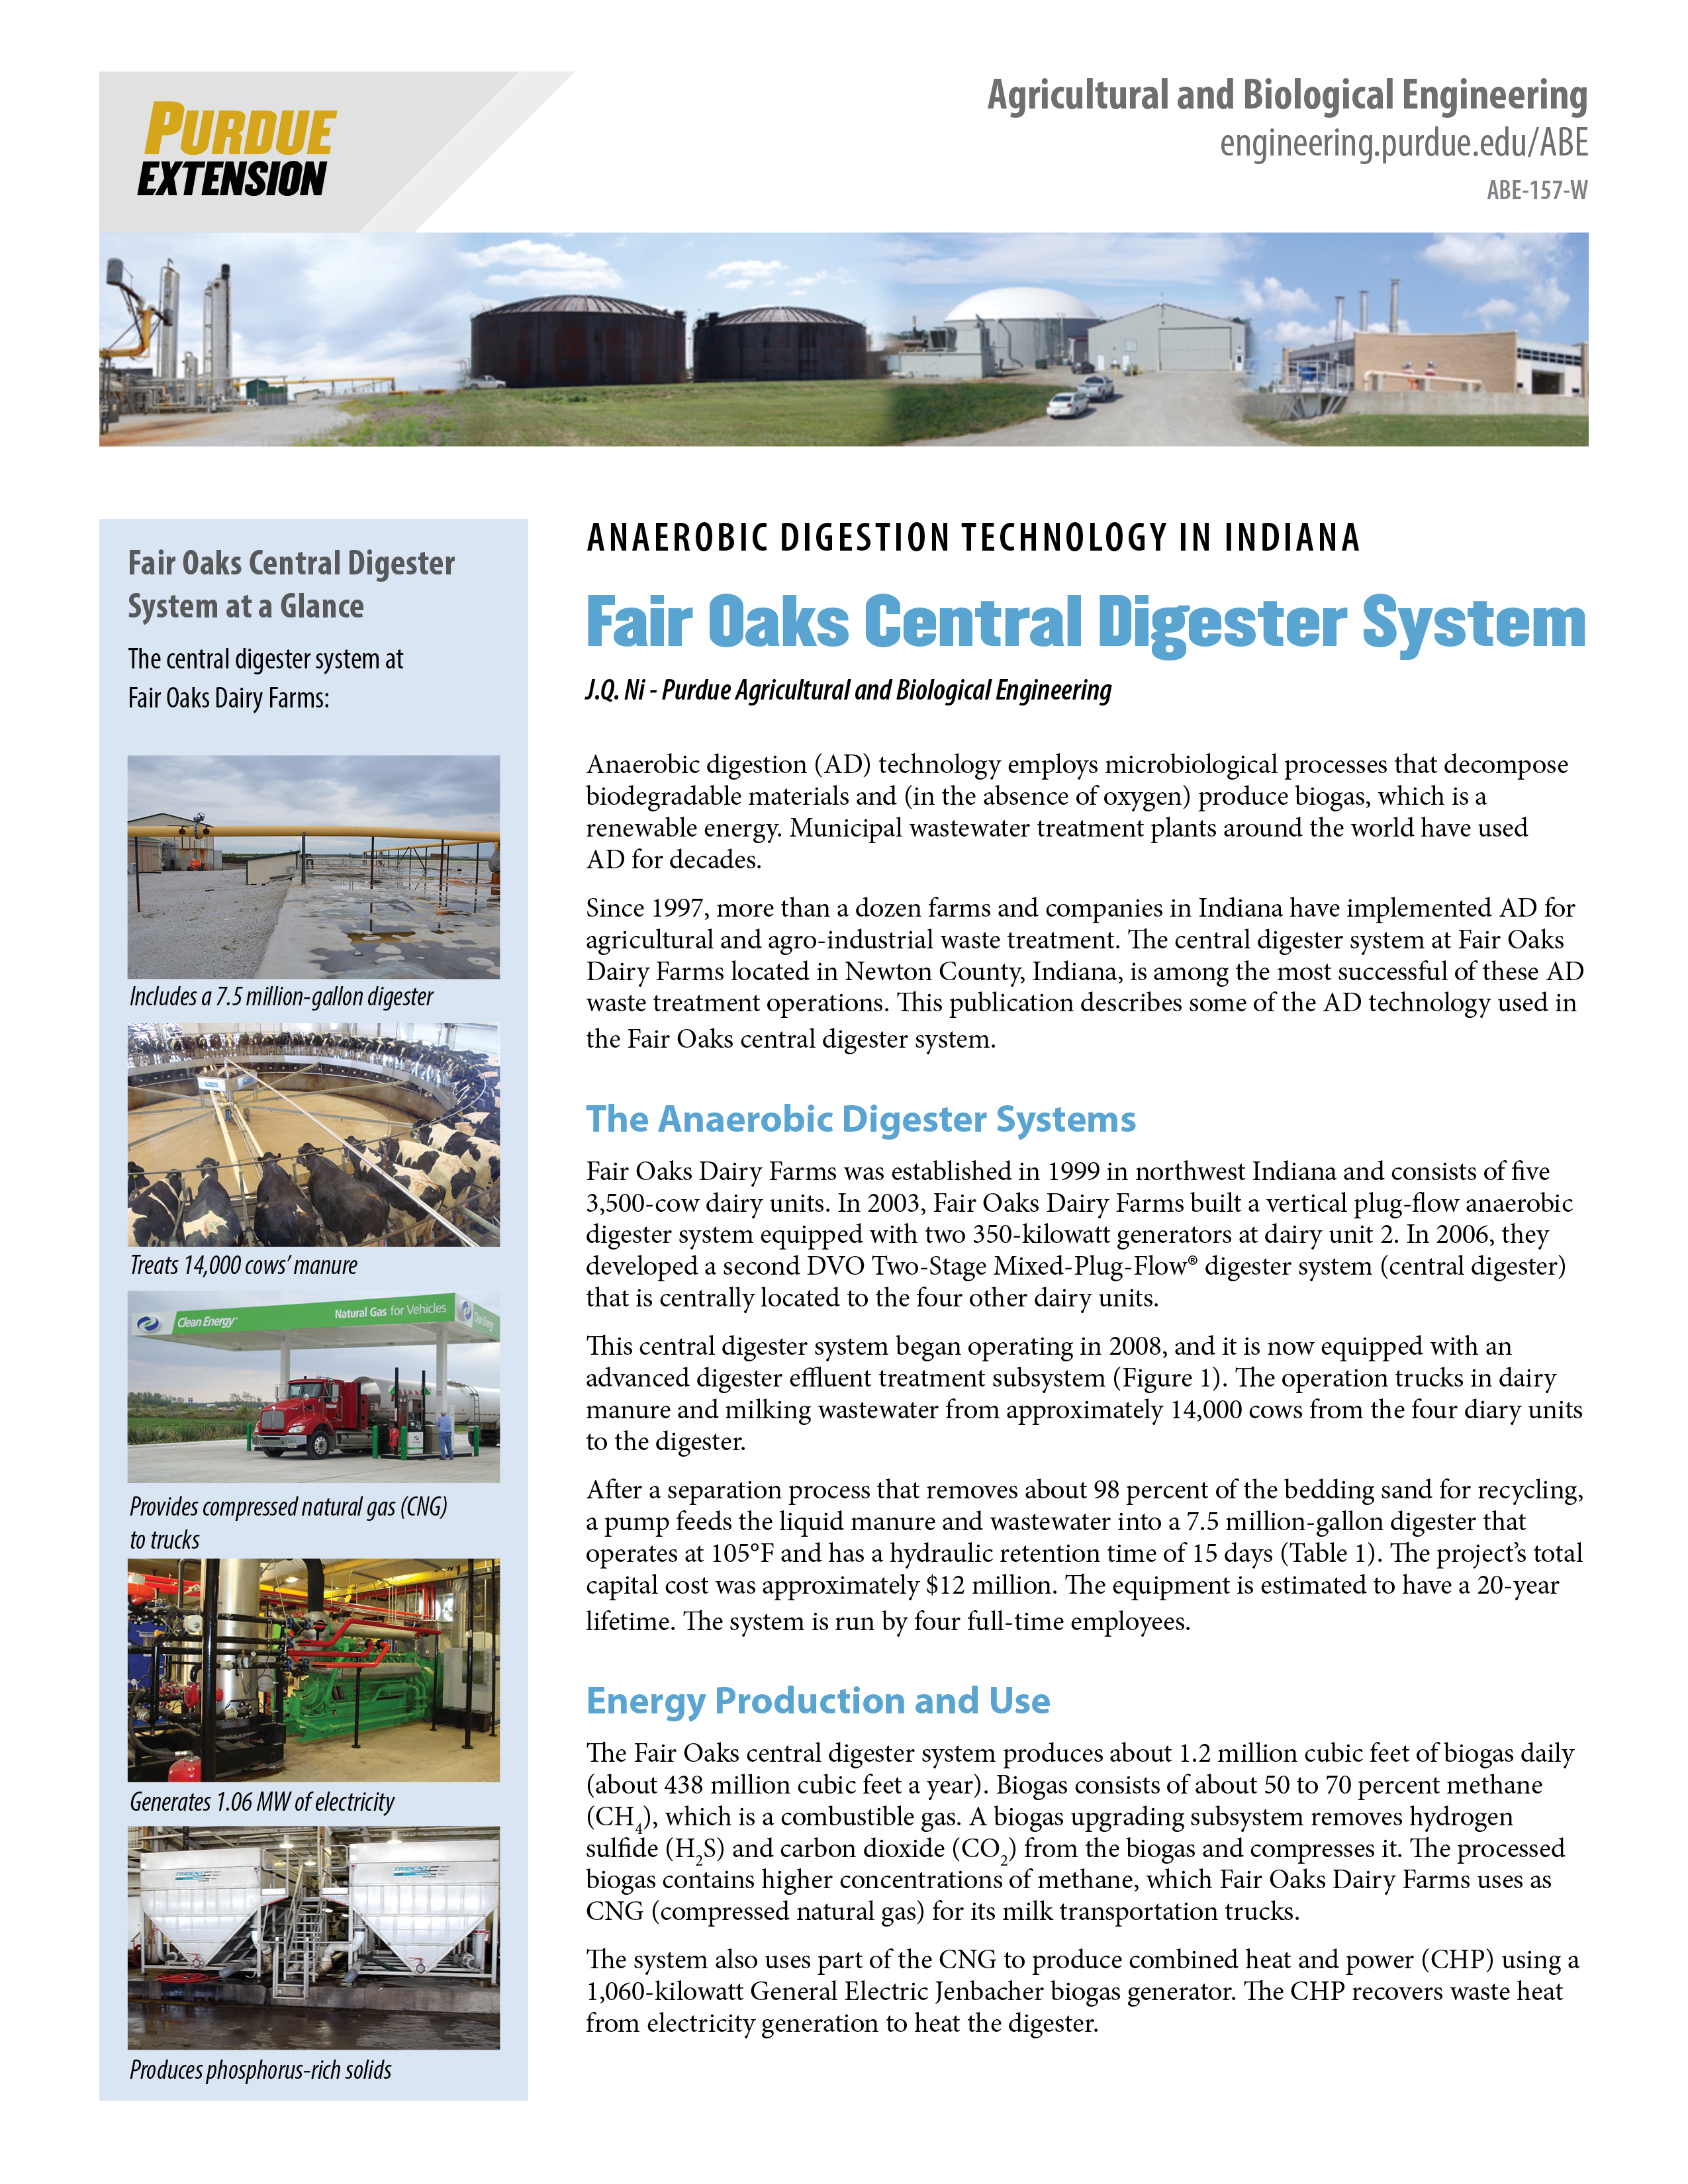 Anaerobic Digestion Technology: Fair Oaks